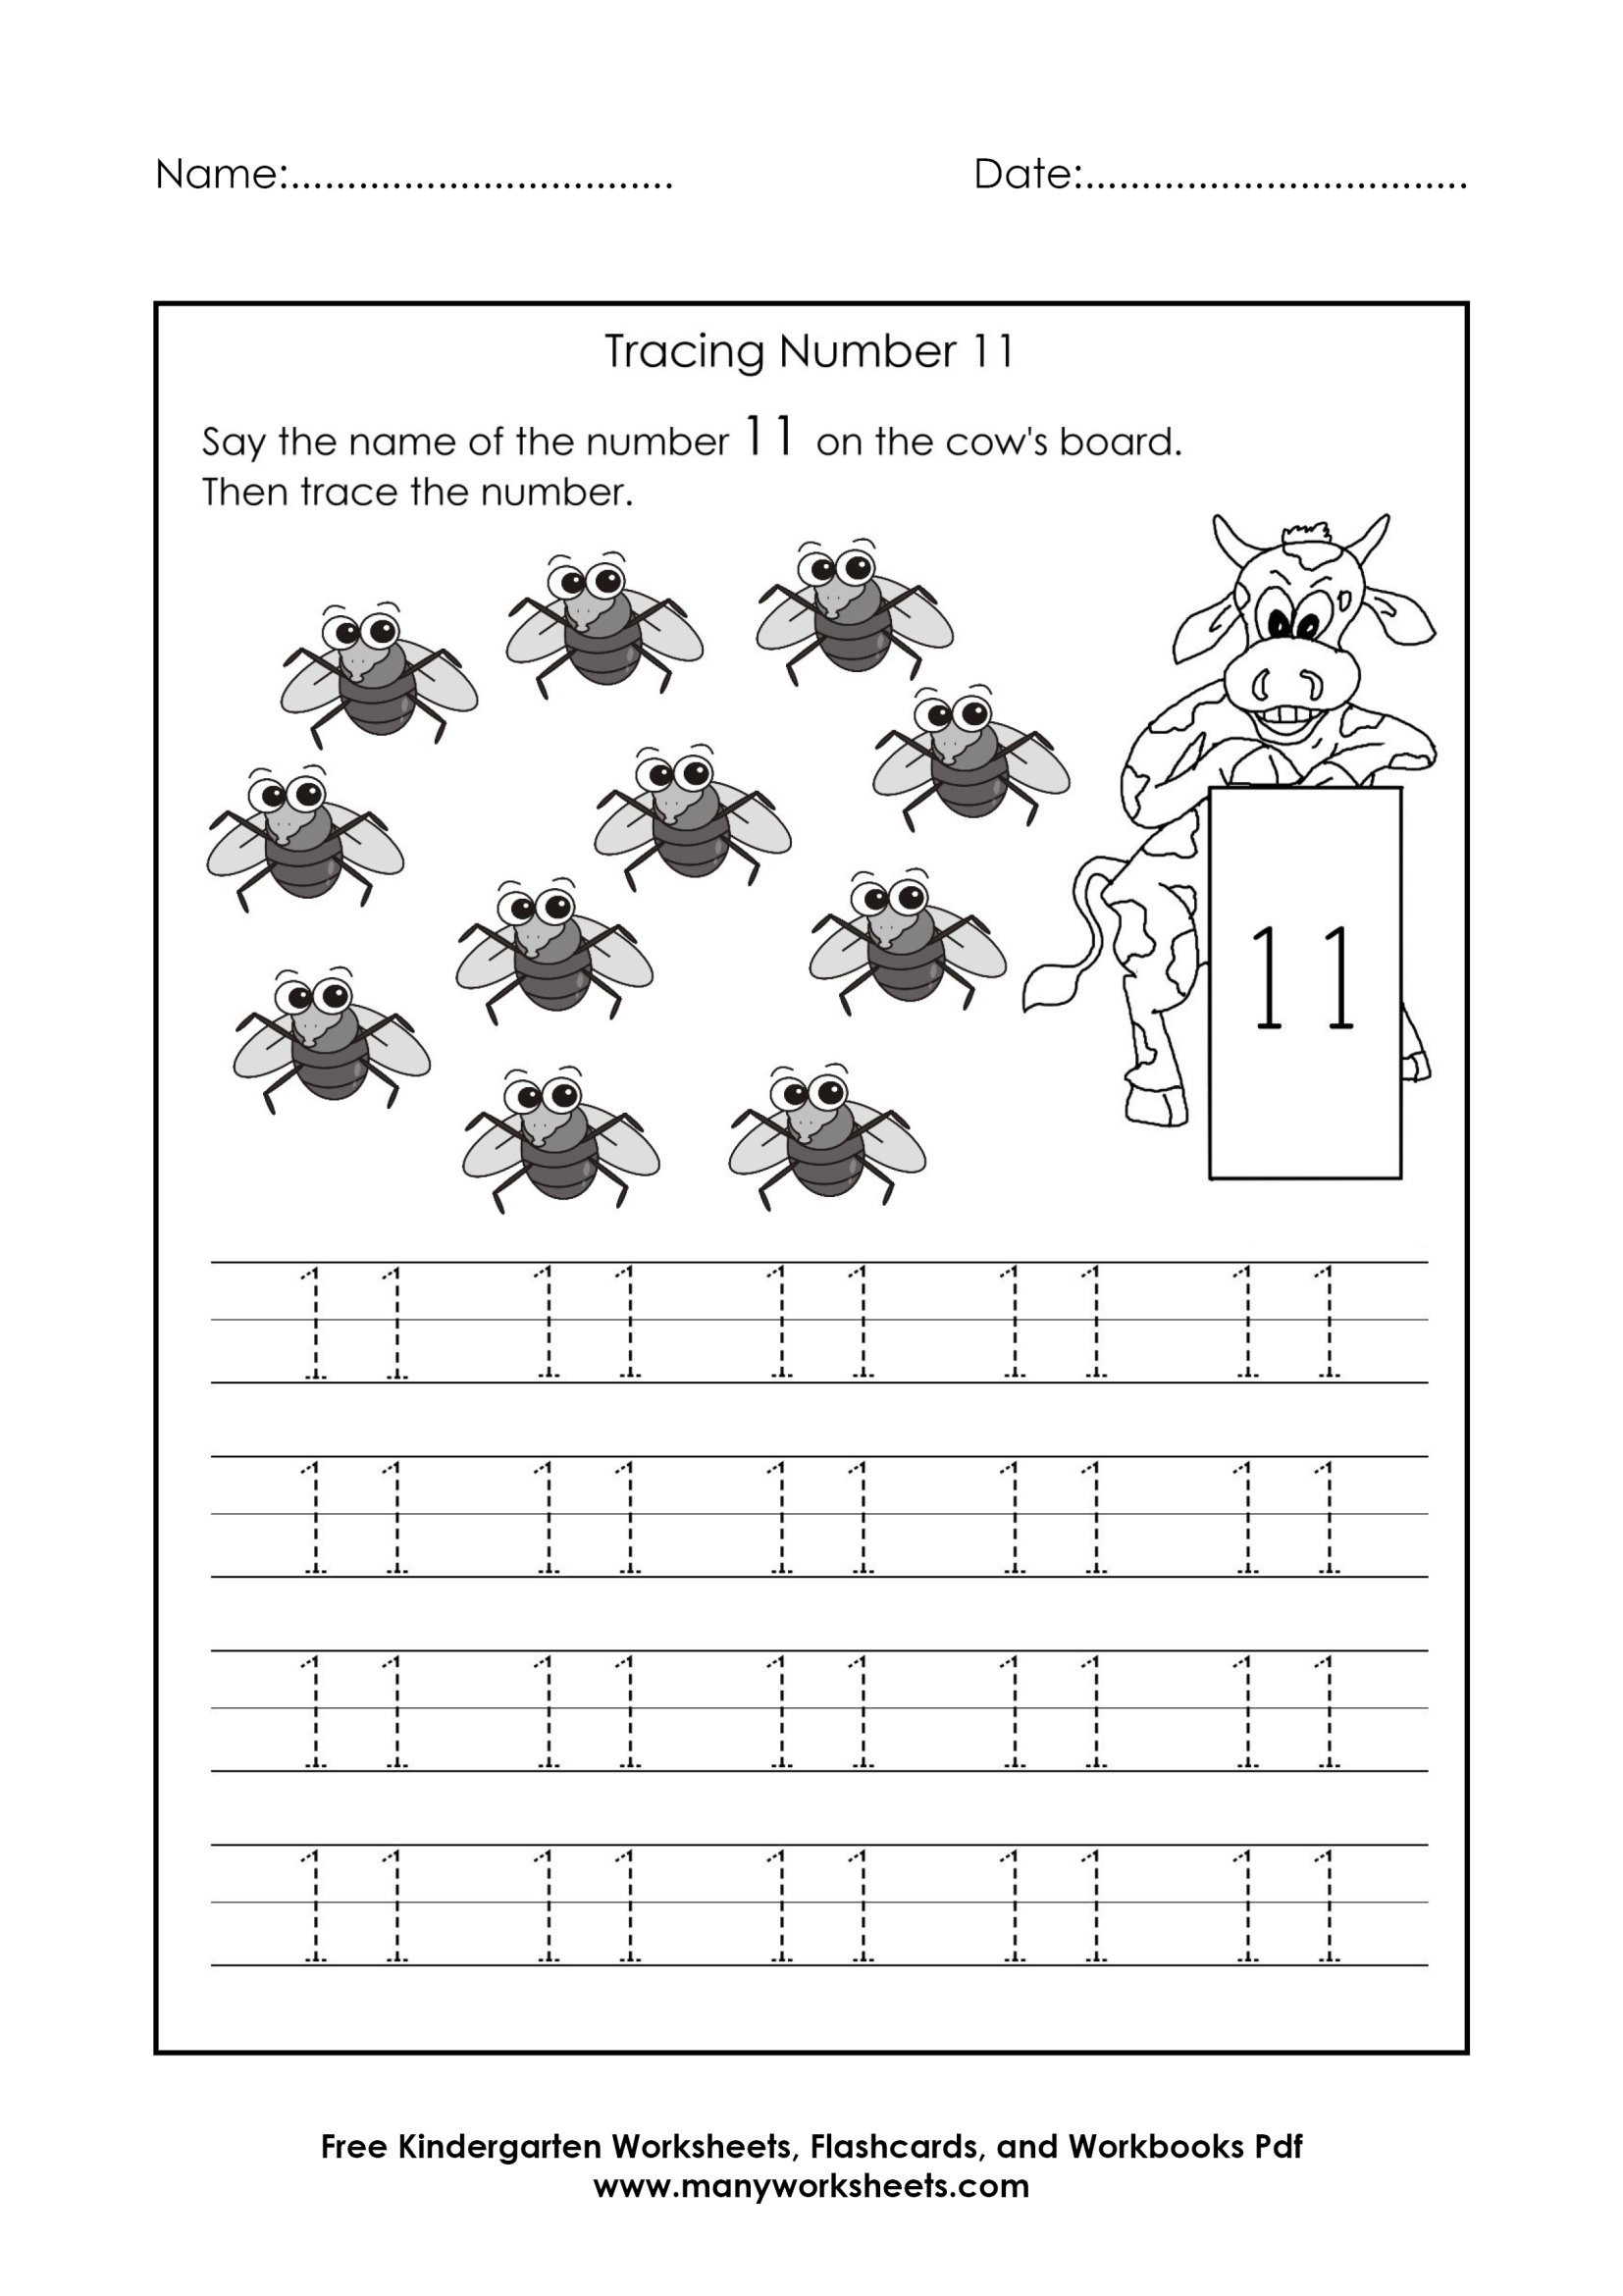 Number 11 Tracing Worksheet